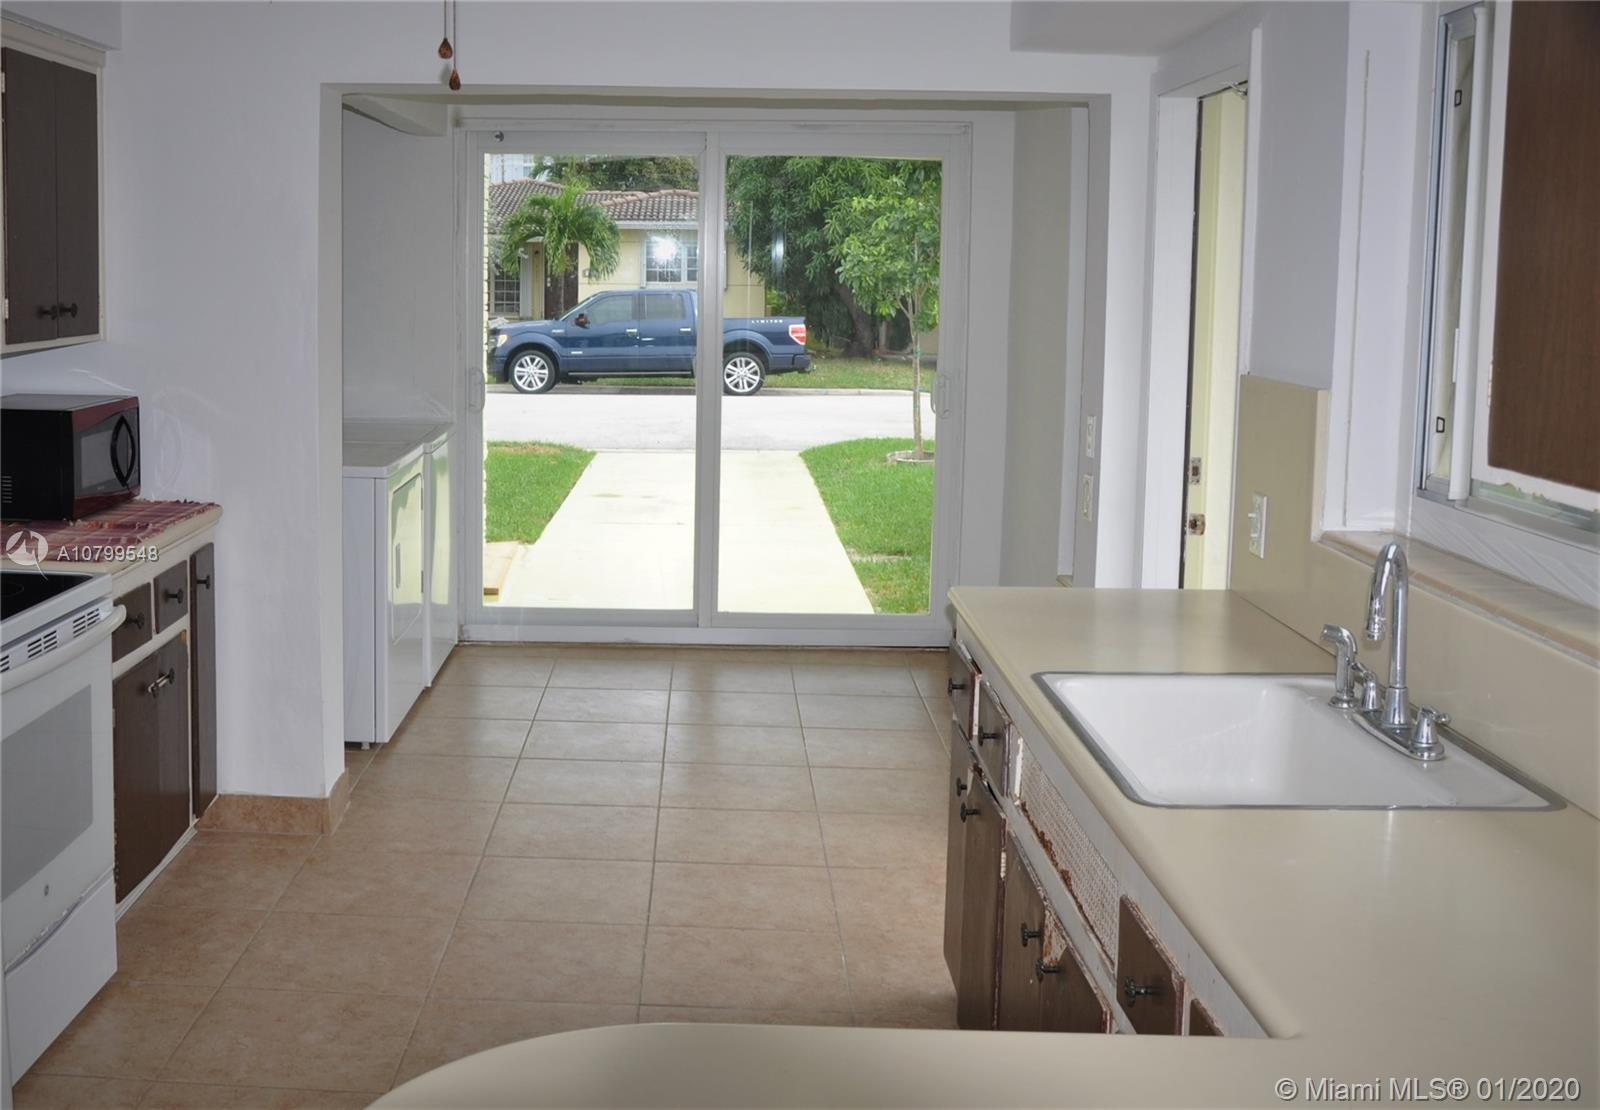 Here is one amazing deal, great open floor plan on this large 1,706 sq ft.  2/2 home in Surfside loc